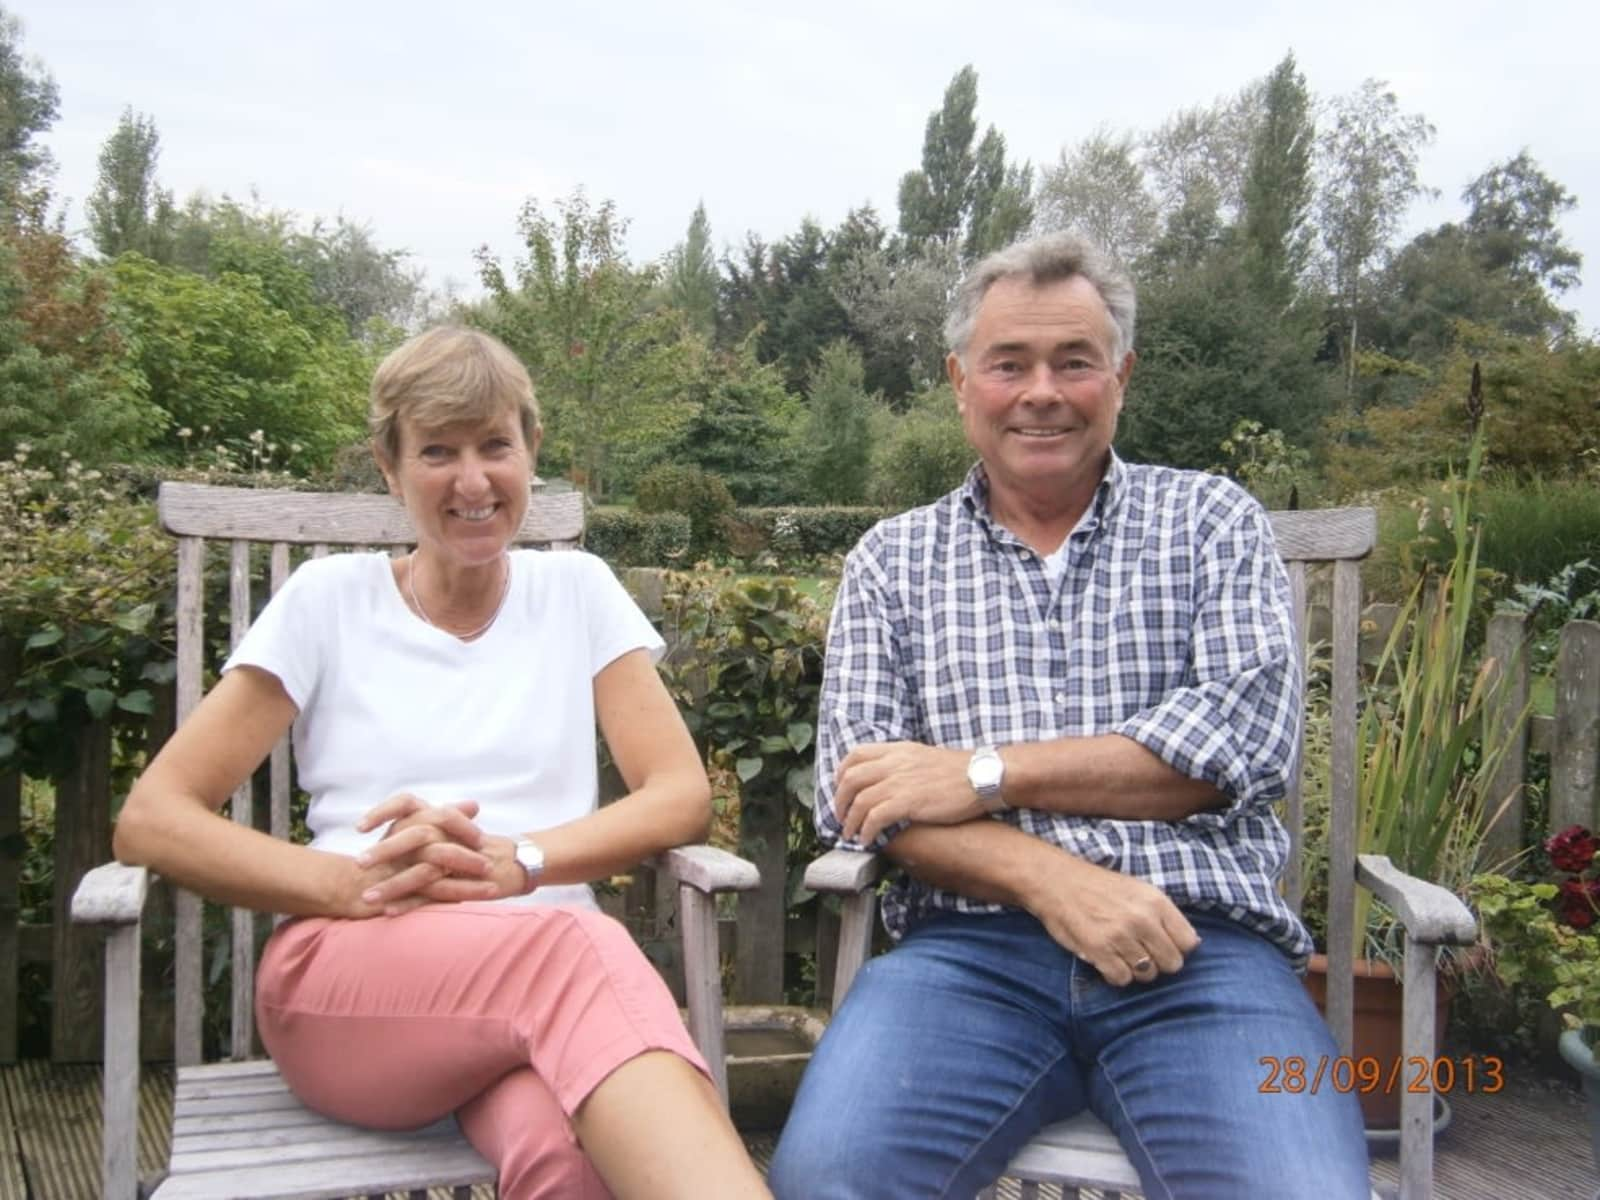 Victor & Susan from Honfleur, France